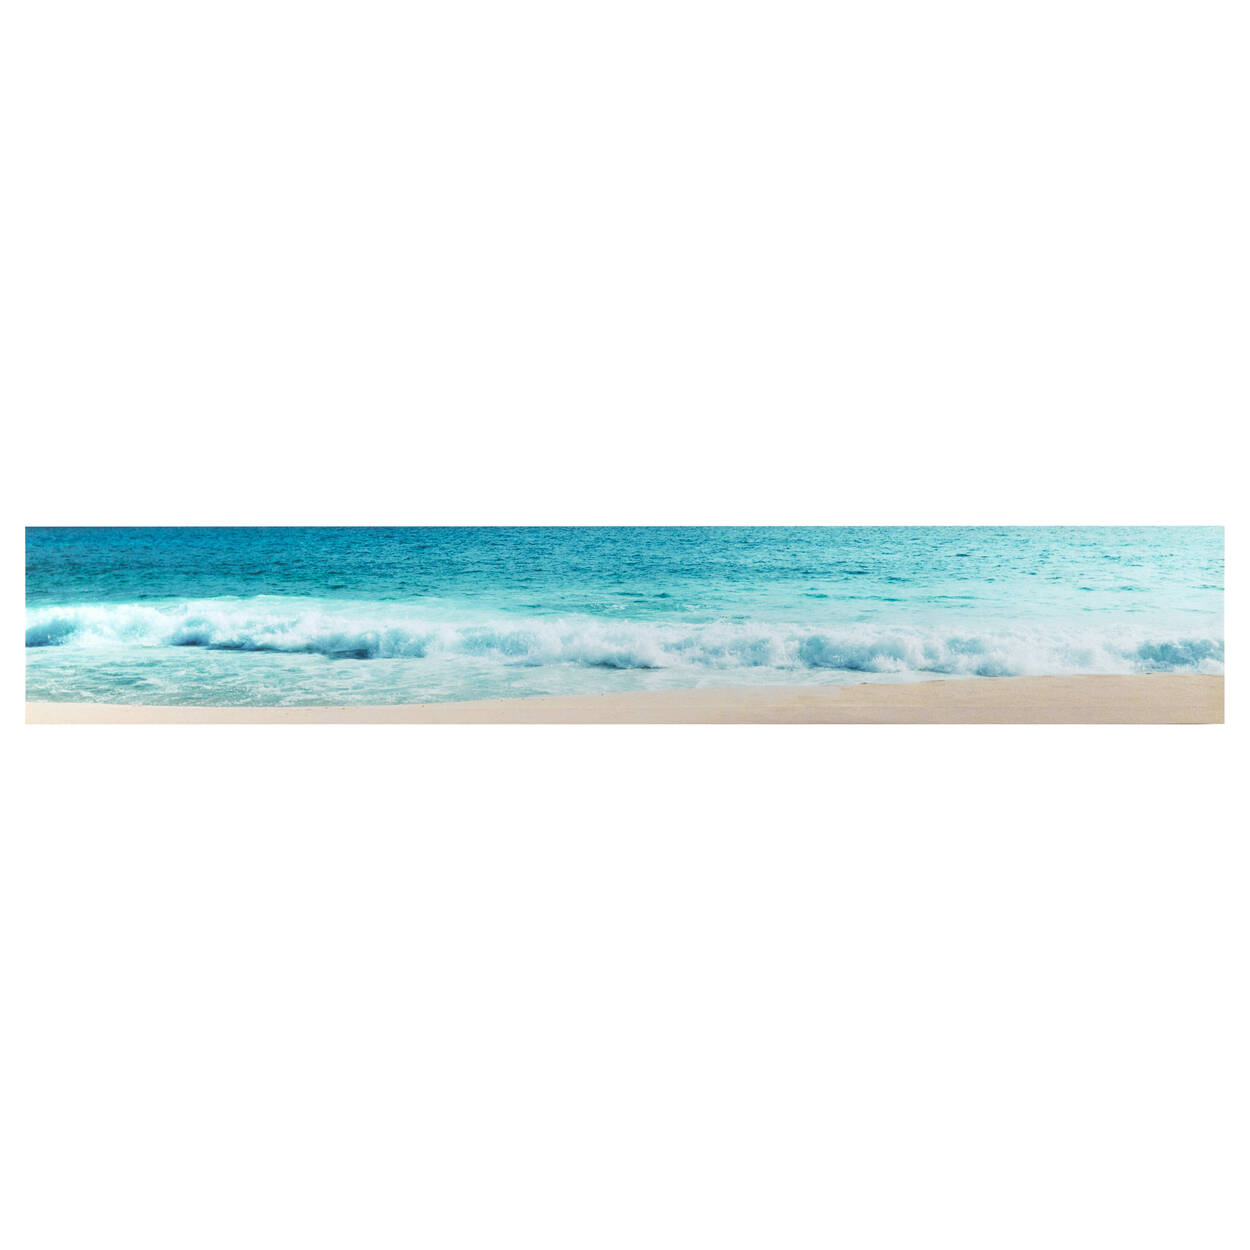 Crashing Waves Printed Canvas